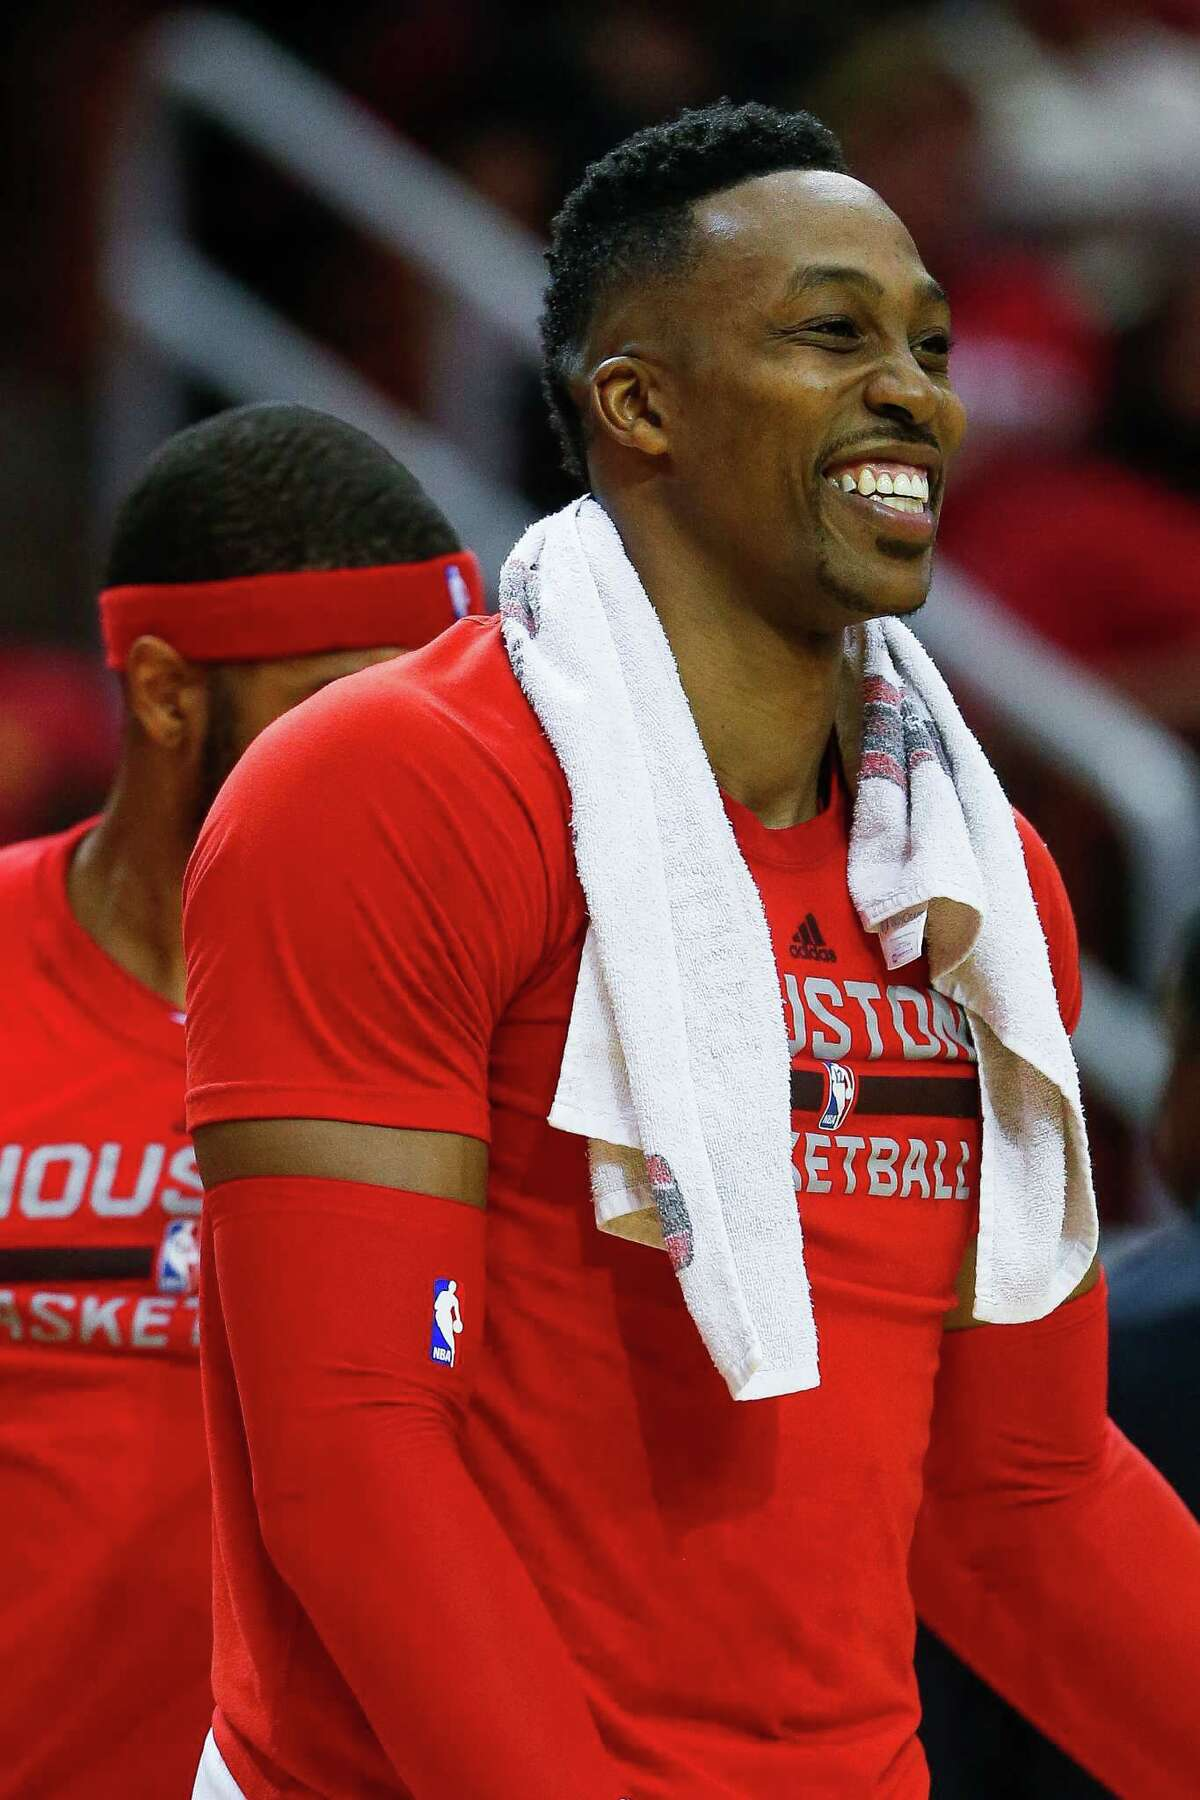 Dwight Howard 2016-17 salary: $23.3 million Contract status: Player option for next season Long expected to opt out of his contract to return to free agency, Howard averaged fewer points on fewer shots per game than he has since his rookie season. With his diminished role and signs of discomfort with it, he would have little reason to not consider his options.